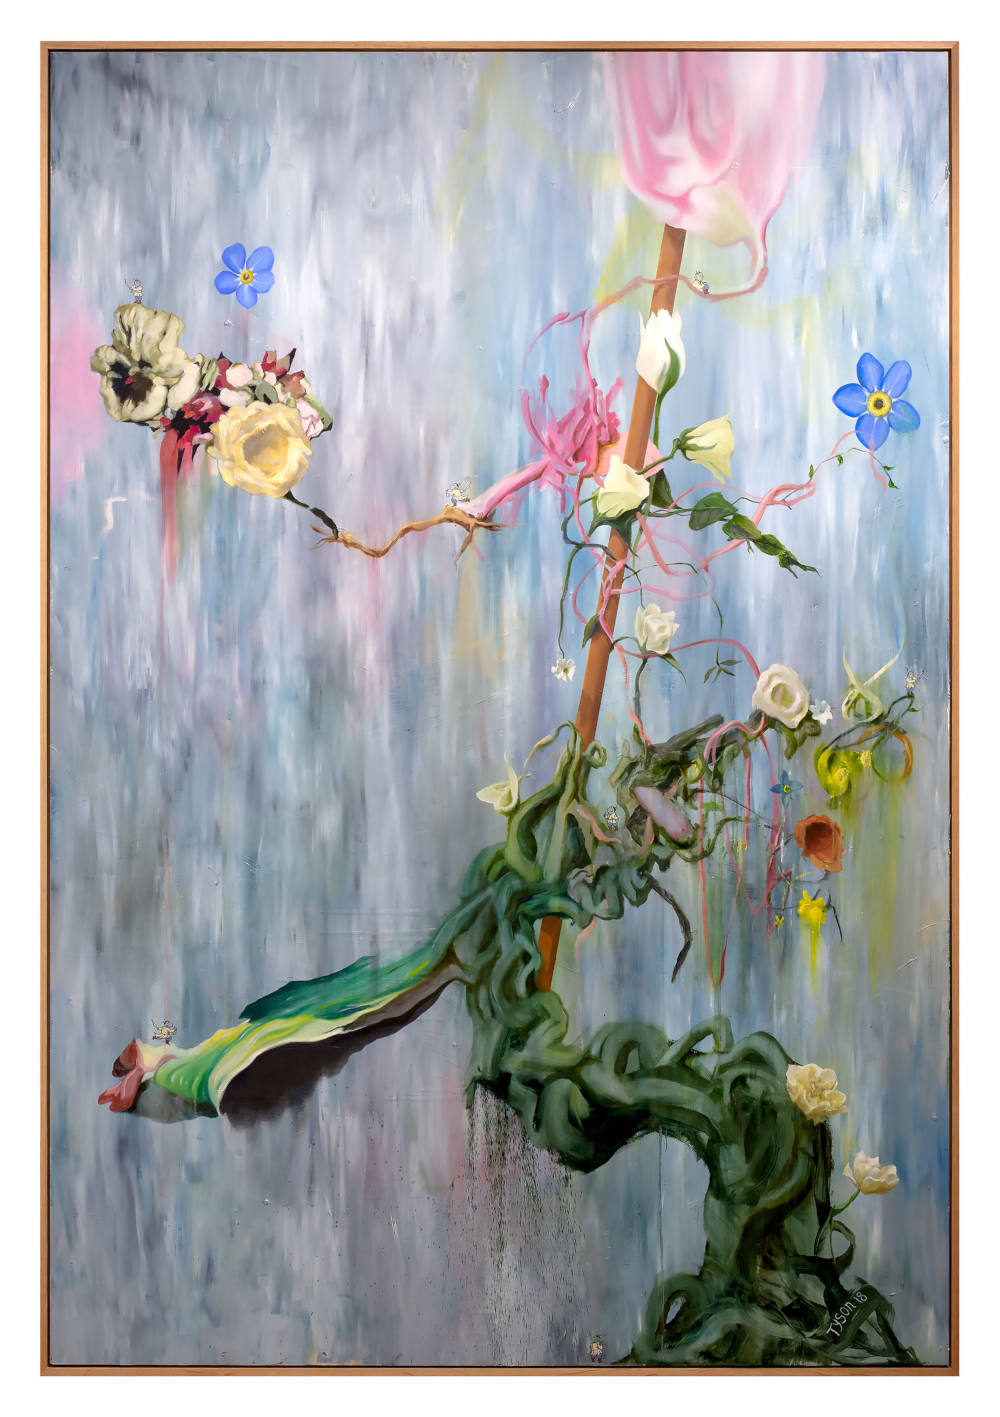 Keith Tyson, Ikebana - Waterfall Stage (Boss Level), 2018. Oil on aluminium 247.7 x 171.5 cm / 97 1/2 x 67 1/2 in (framed) © Keith Tyson. Courtesy of the artist and Hauser & Wirth